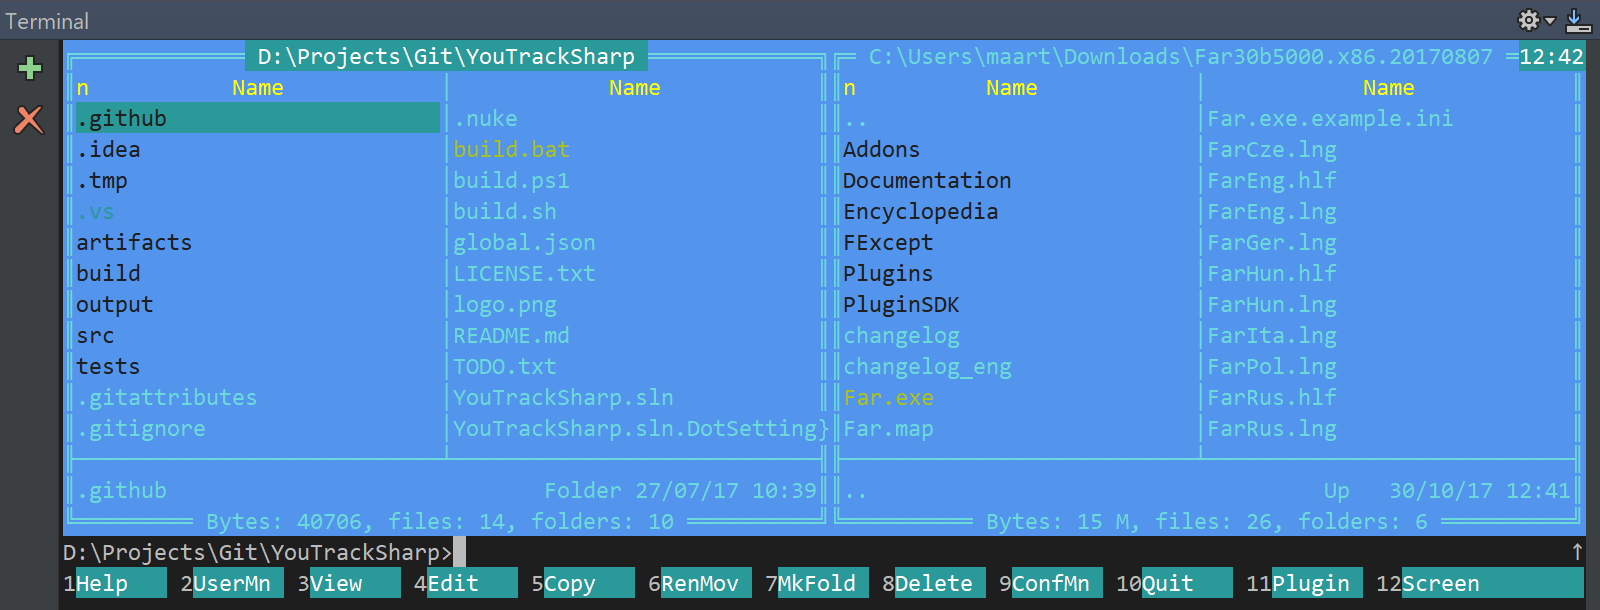 Using Far Manager in the JetBrains Rider's terminal emulator